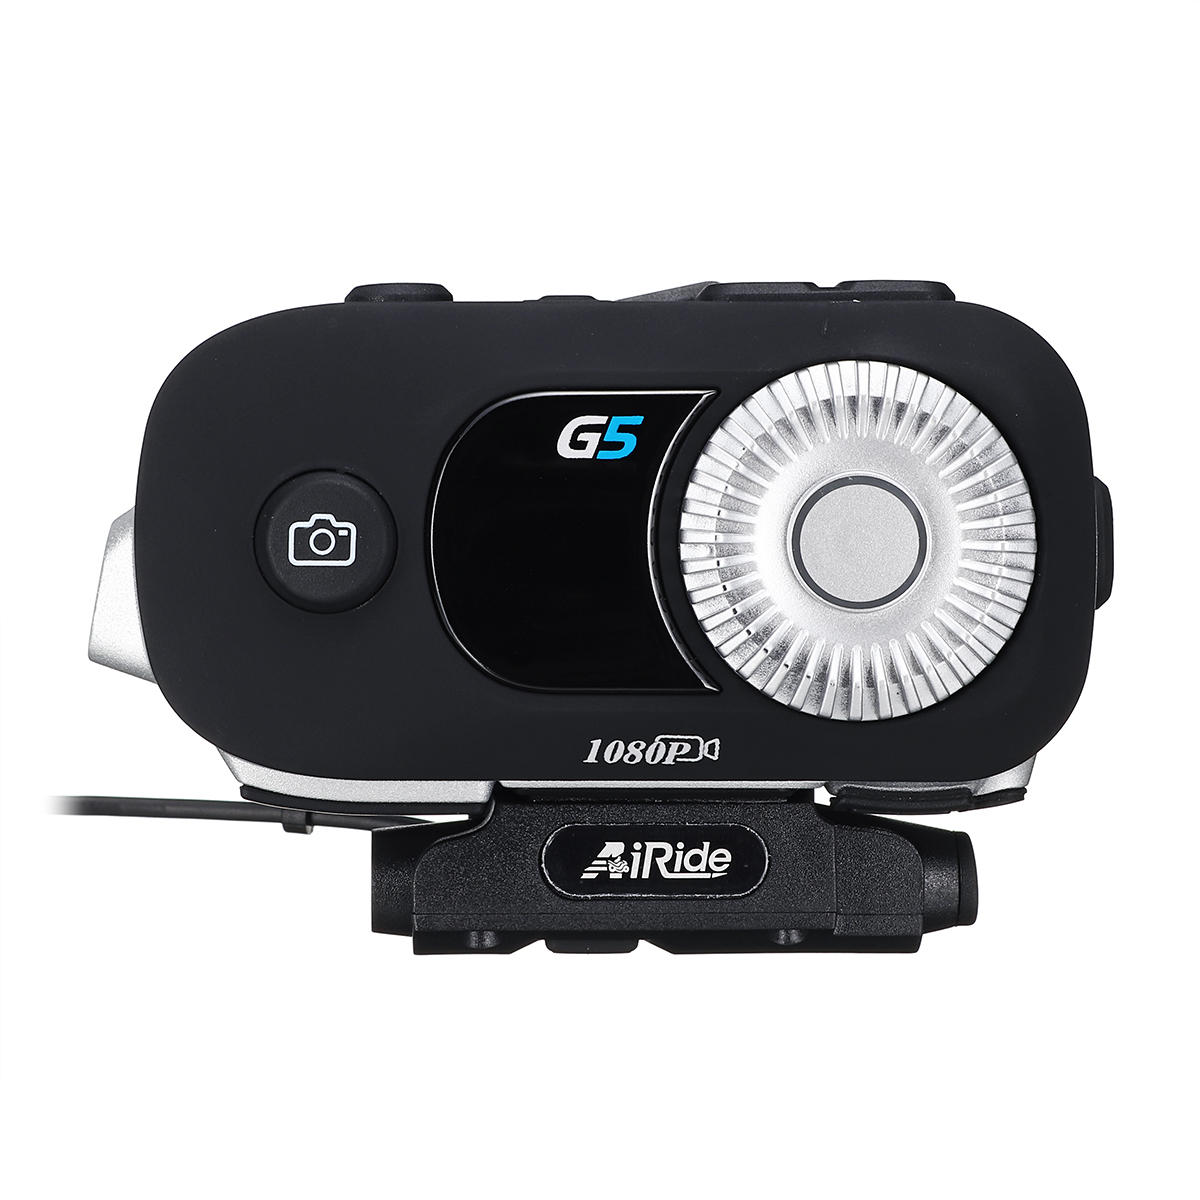 AiRide G5 3500M 1080P Motorcycle Helmet Camera DVR Intercom Headset Driving Recorder with bluetooth Function Interphone